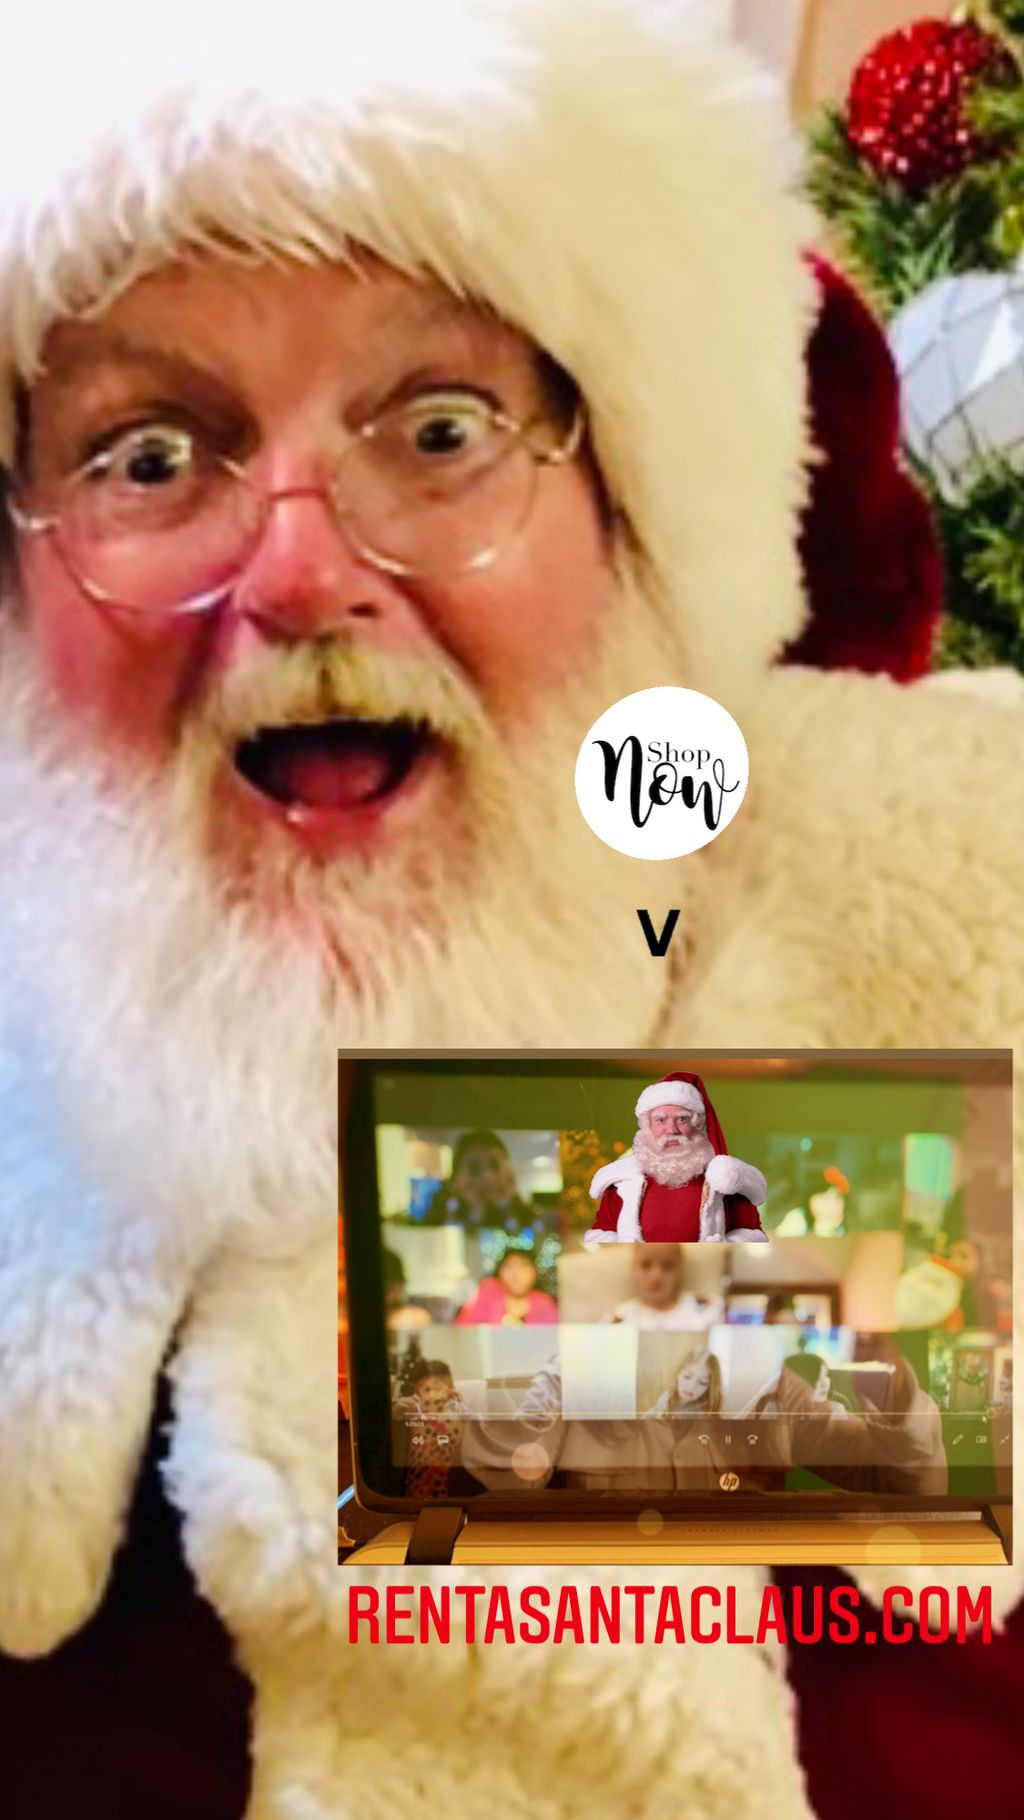 Virtual Visits with Santa